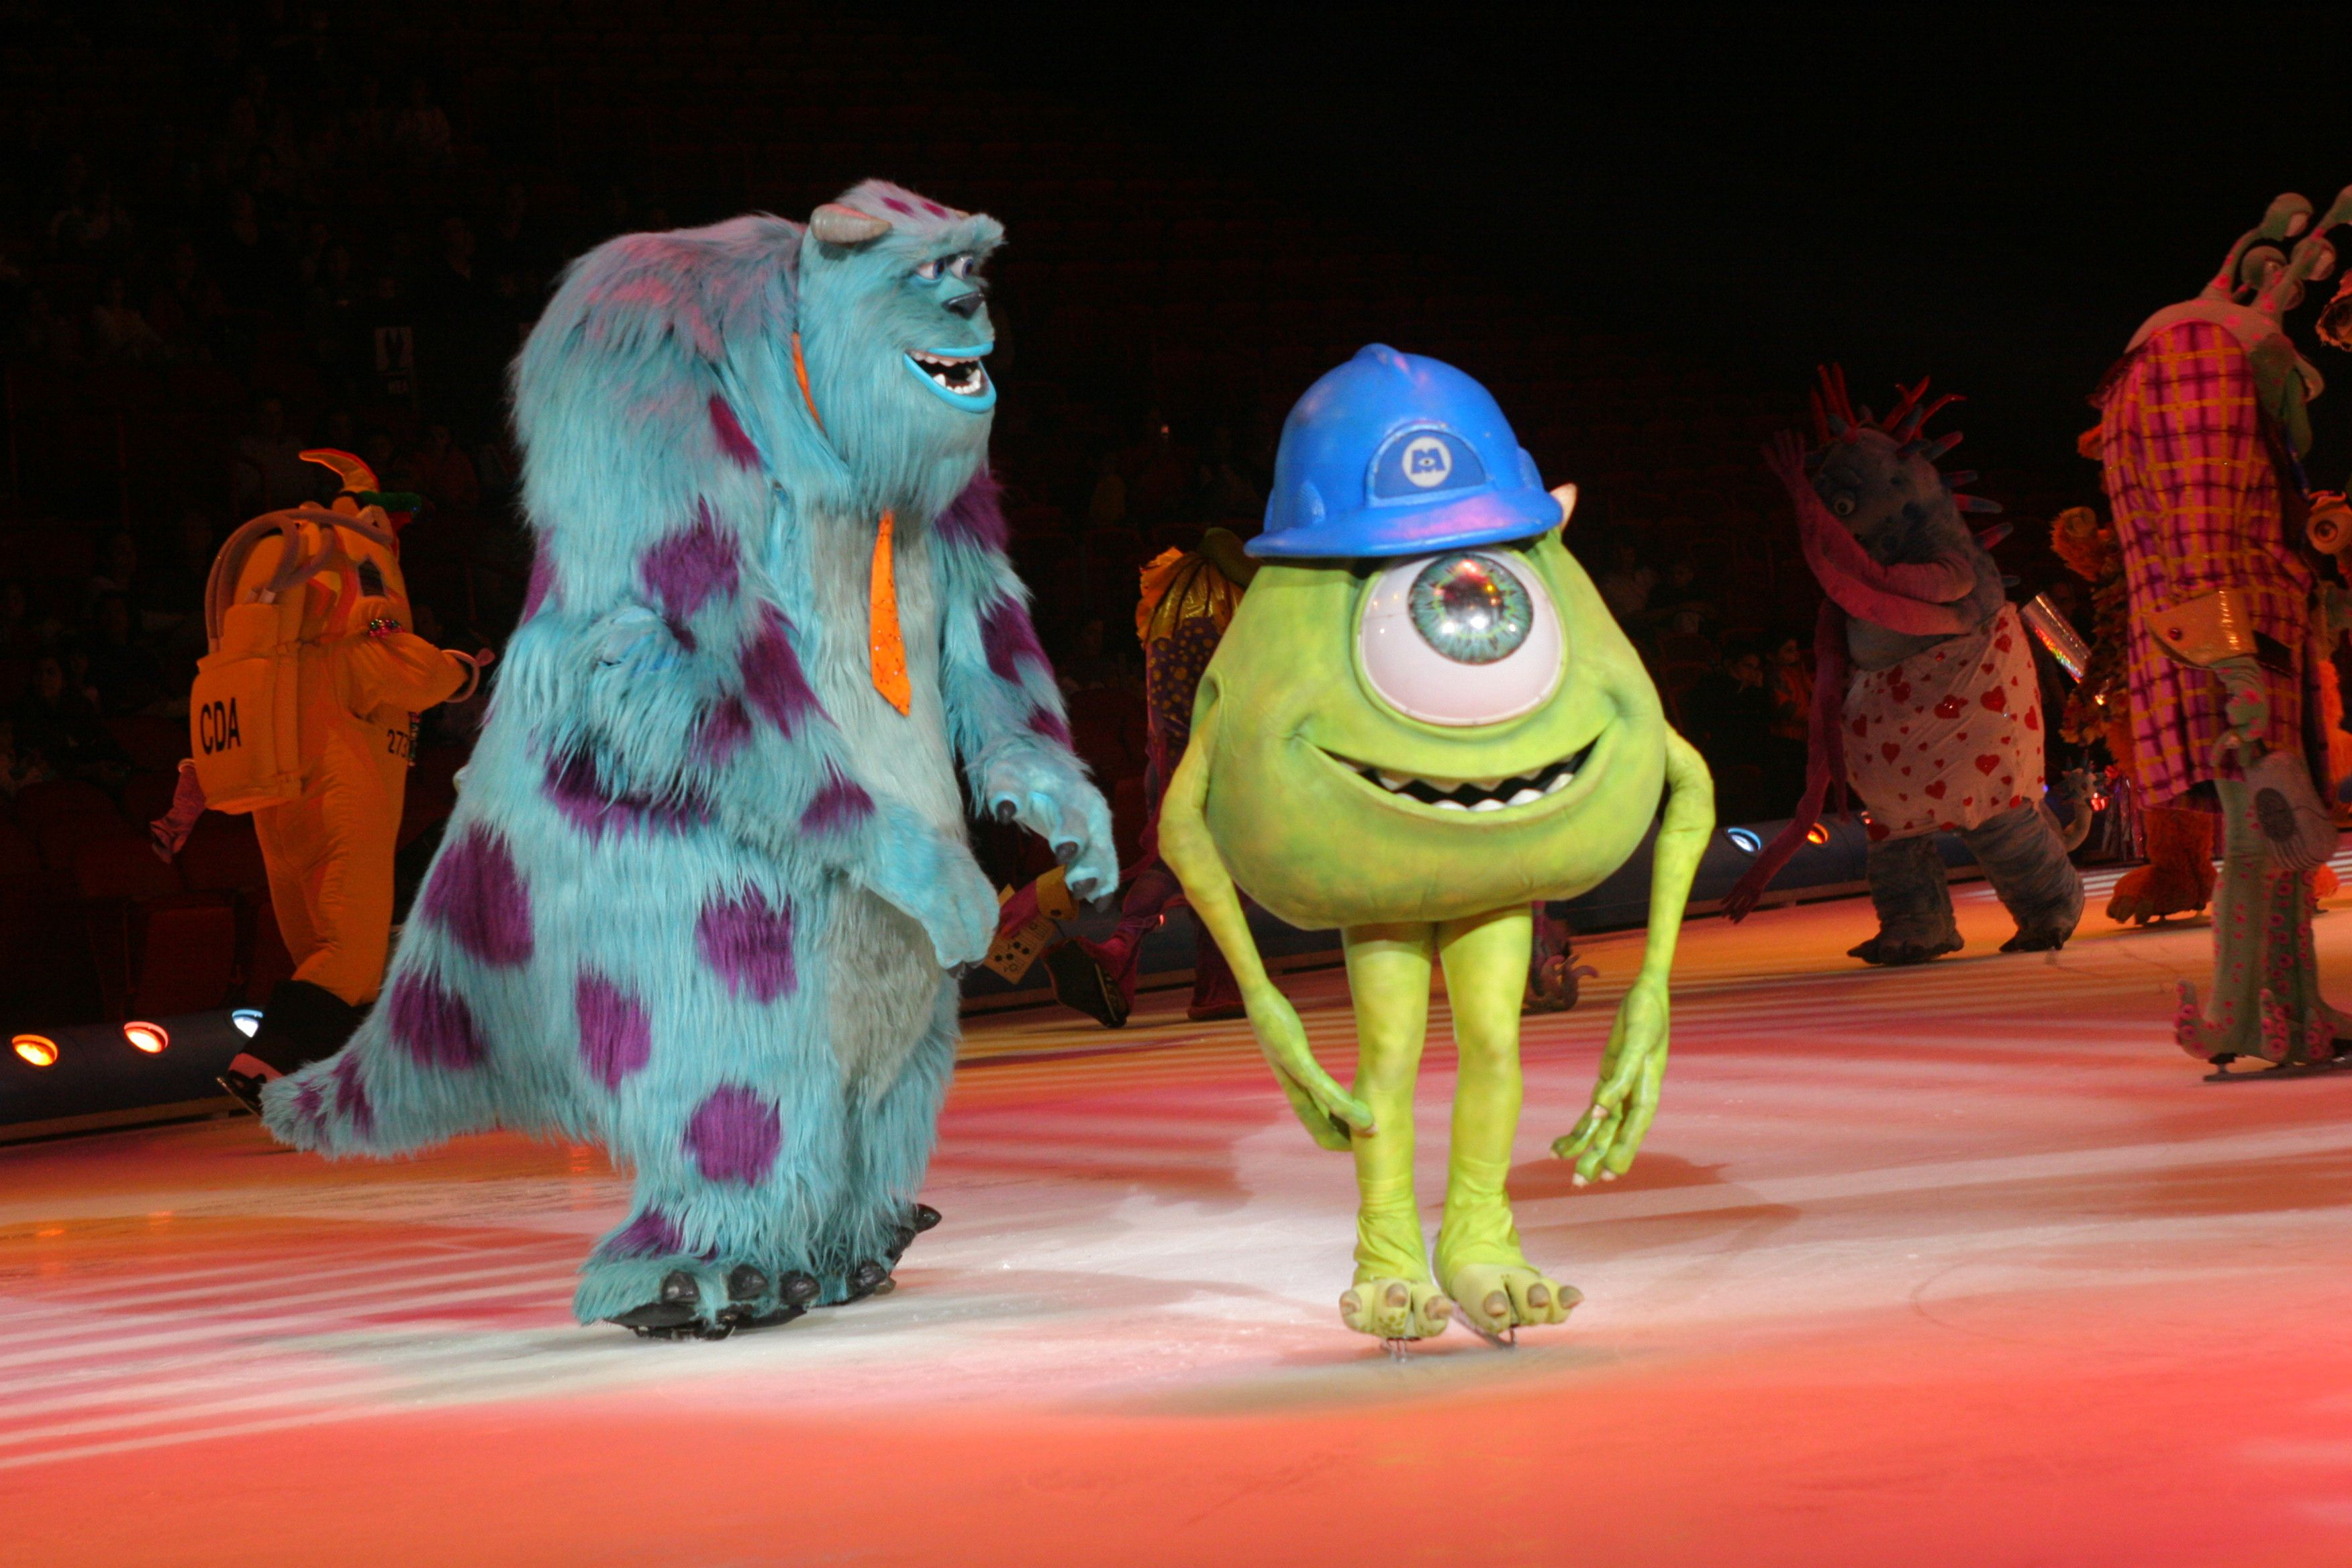 Resultado de imagen para disney on ice monster inc